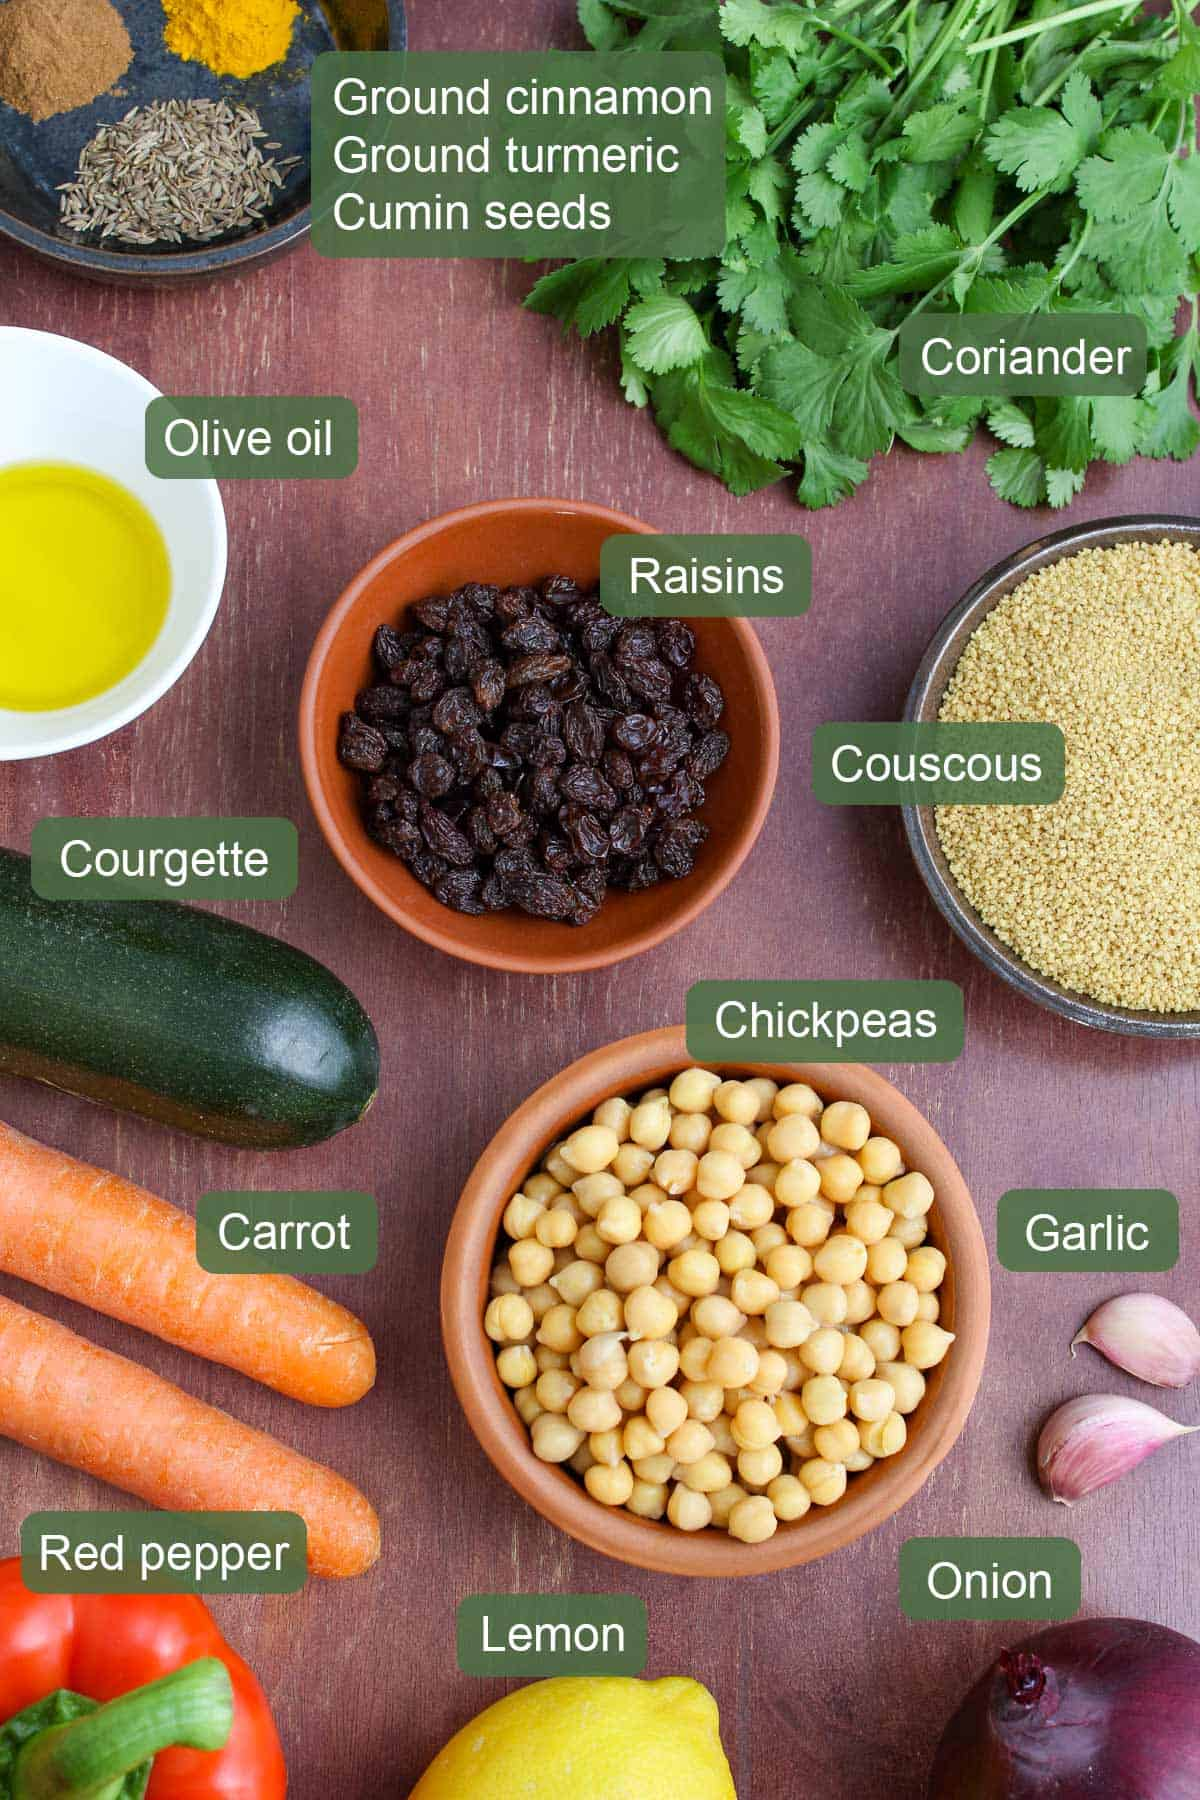 List of Ingredients to Make Moroccan Couscous